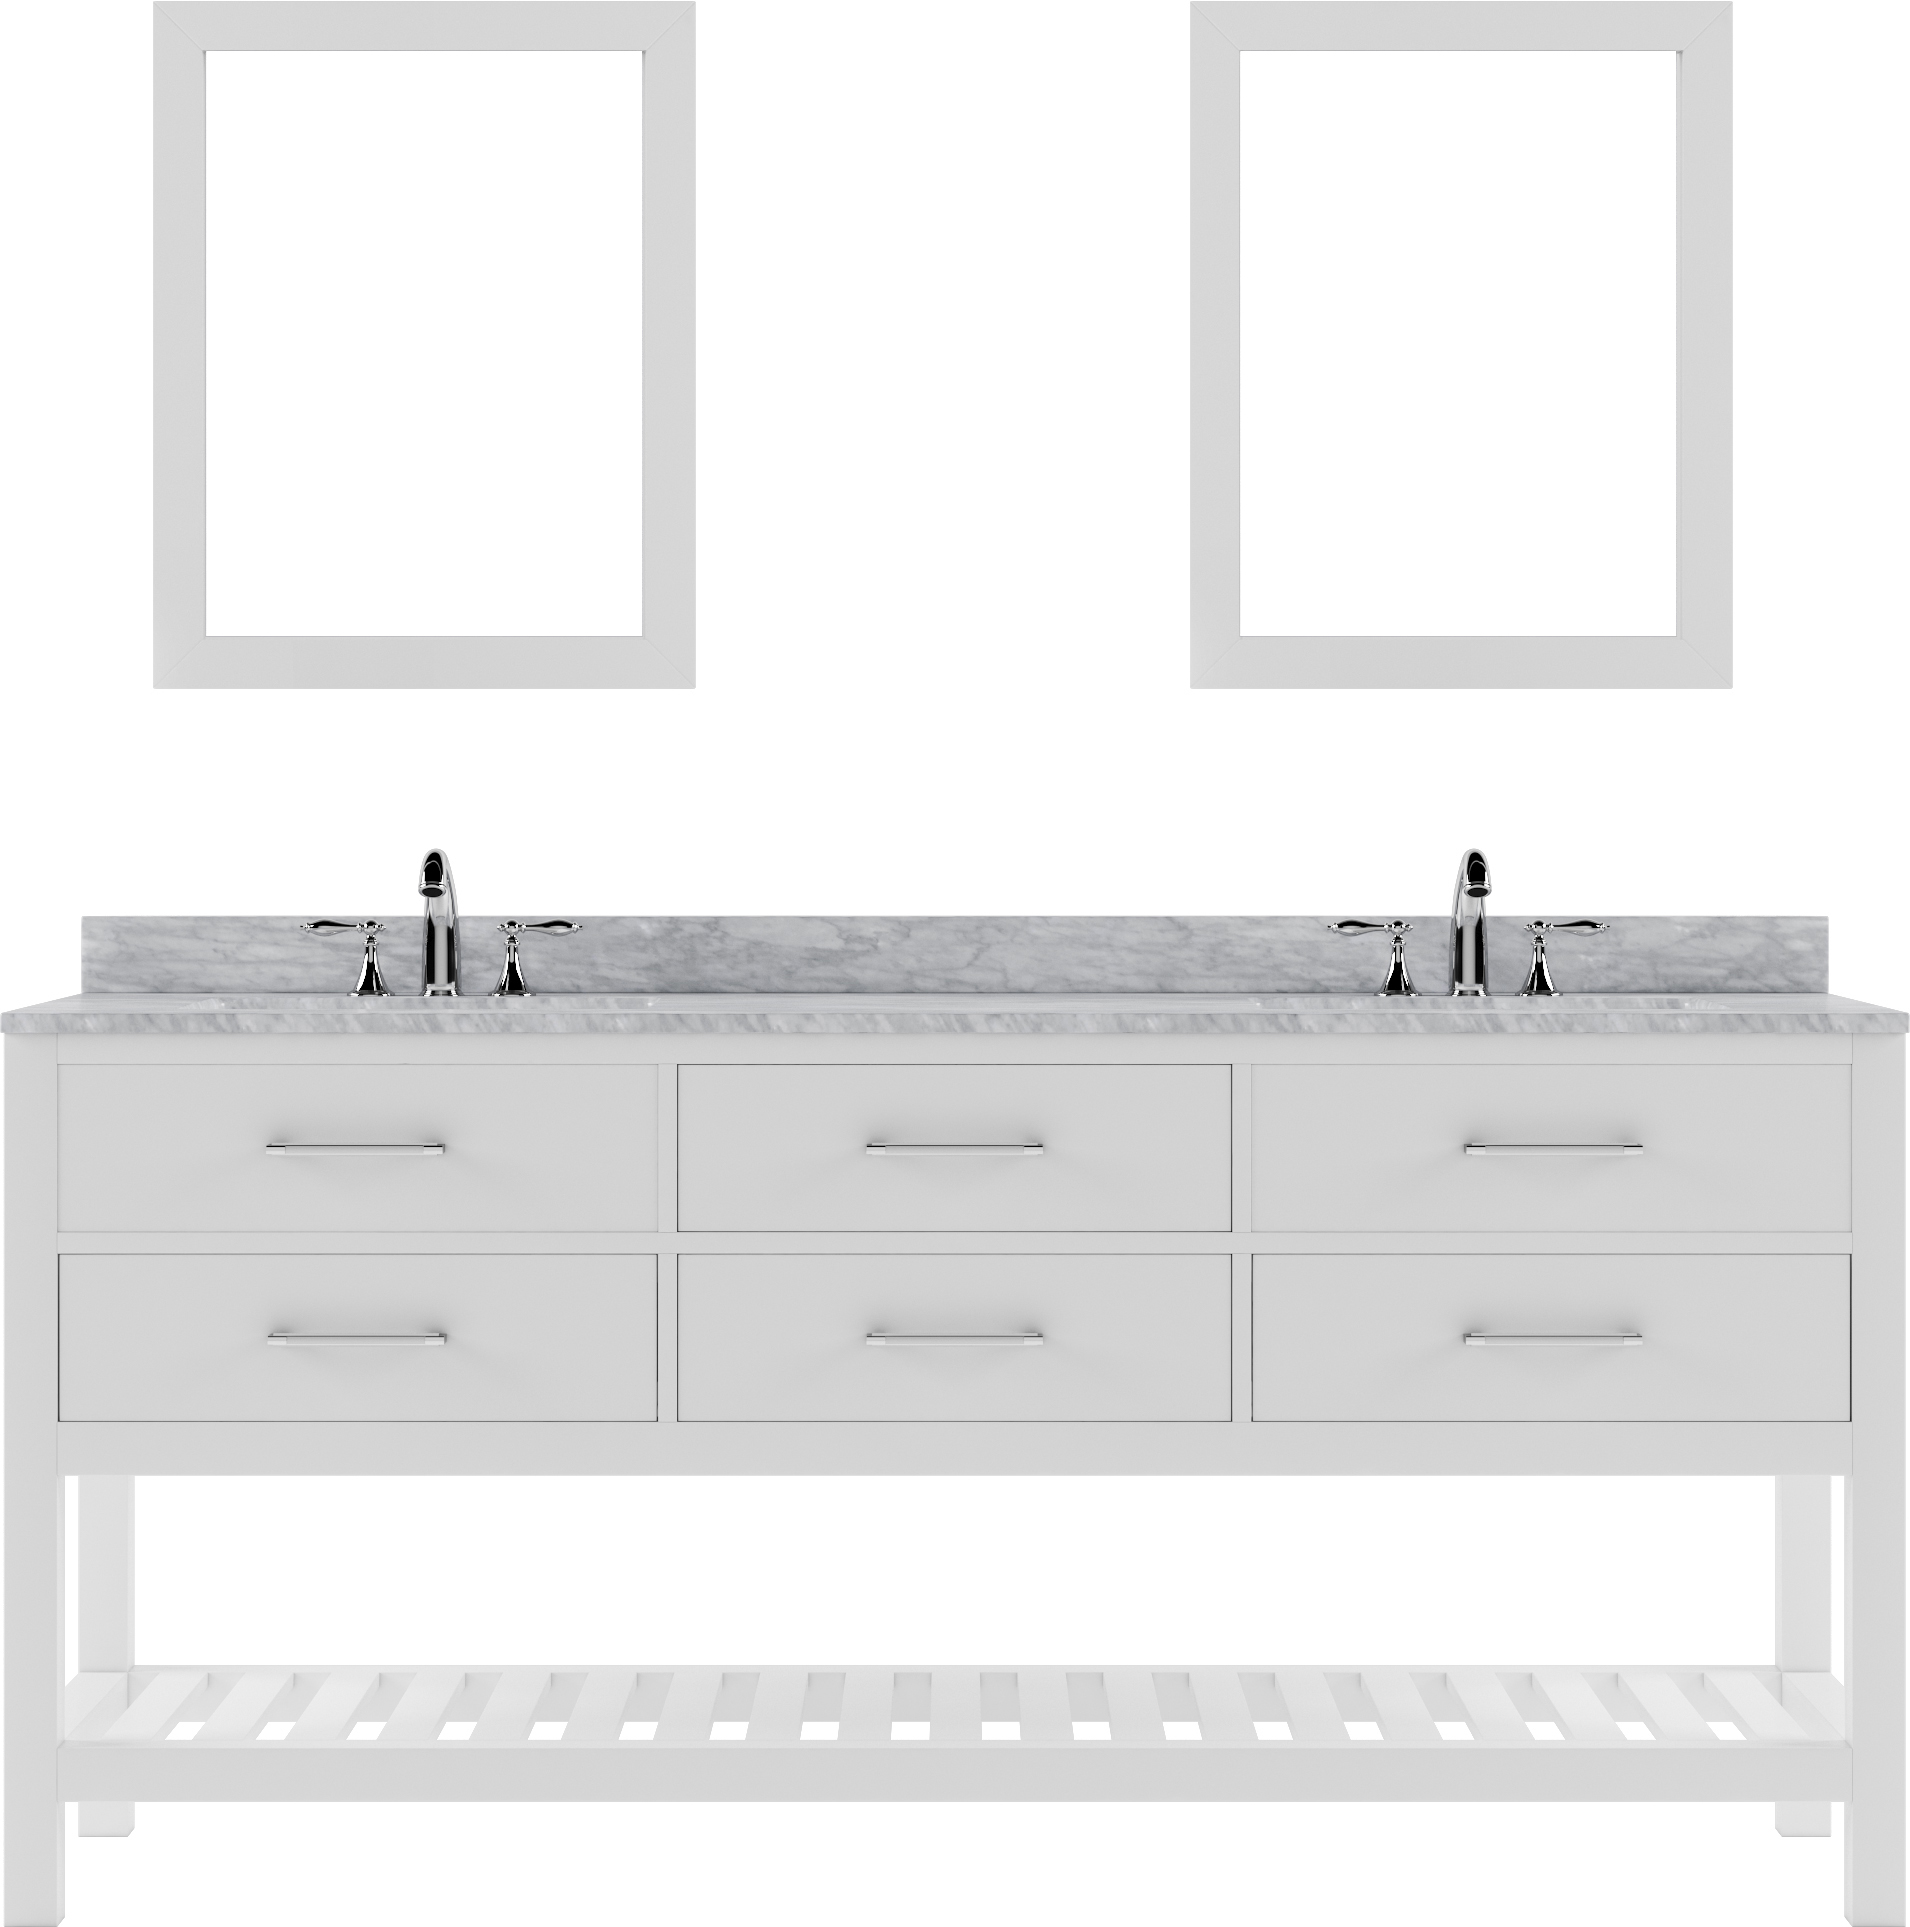 How To Choose A Mirror Size For Your Bathroom Vanity Luxury Living Direct Bathroom Vanity Blog Luxury Living Direct